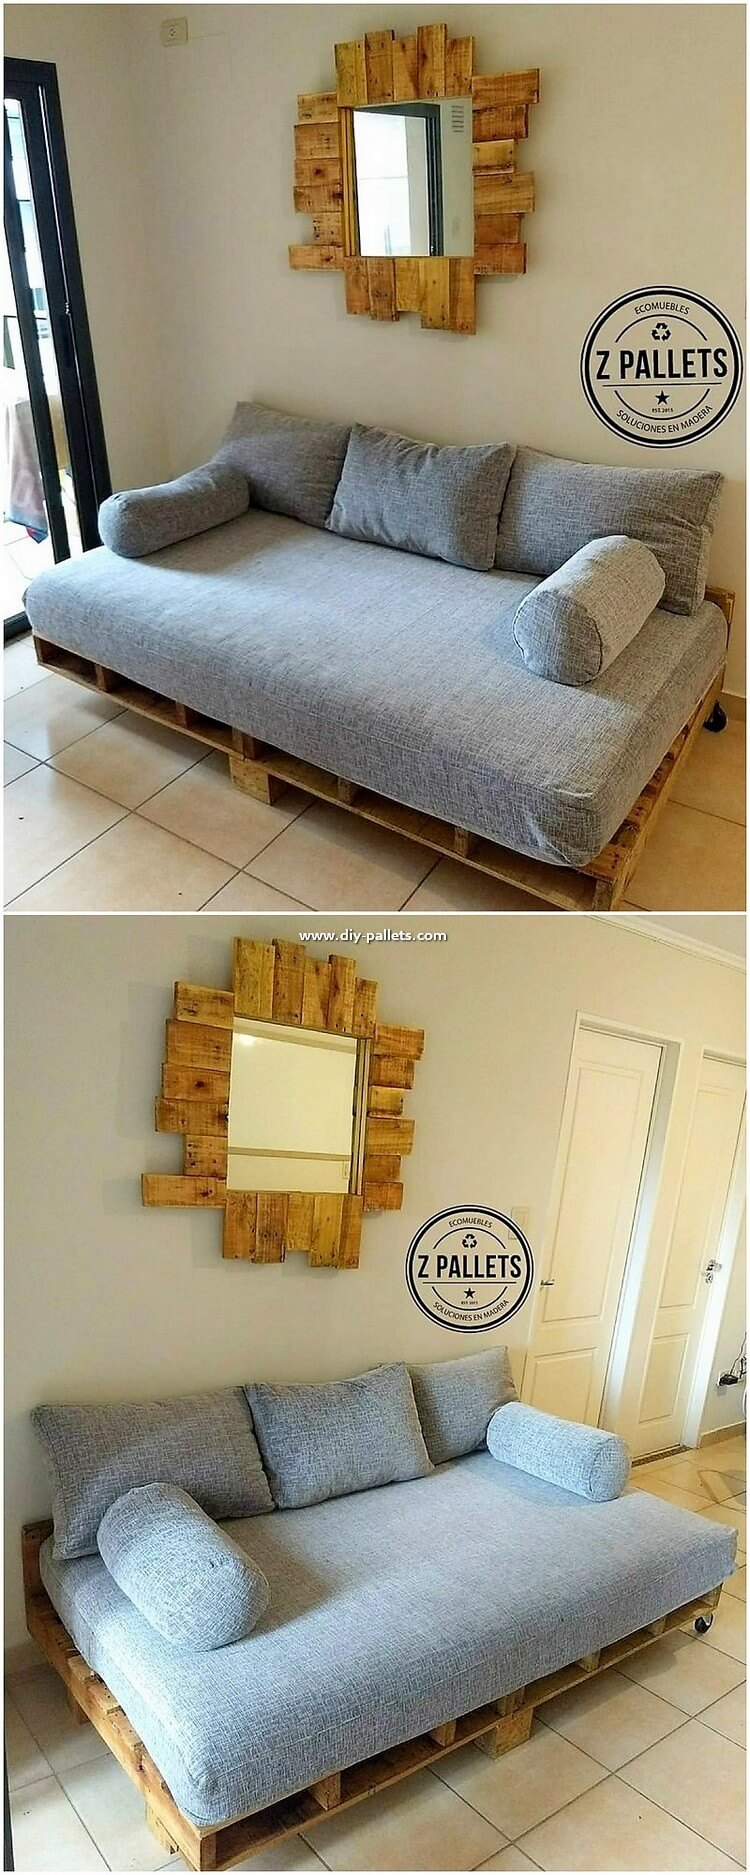 Pallet Mirror and Couch